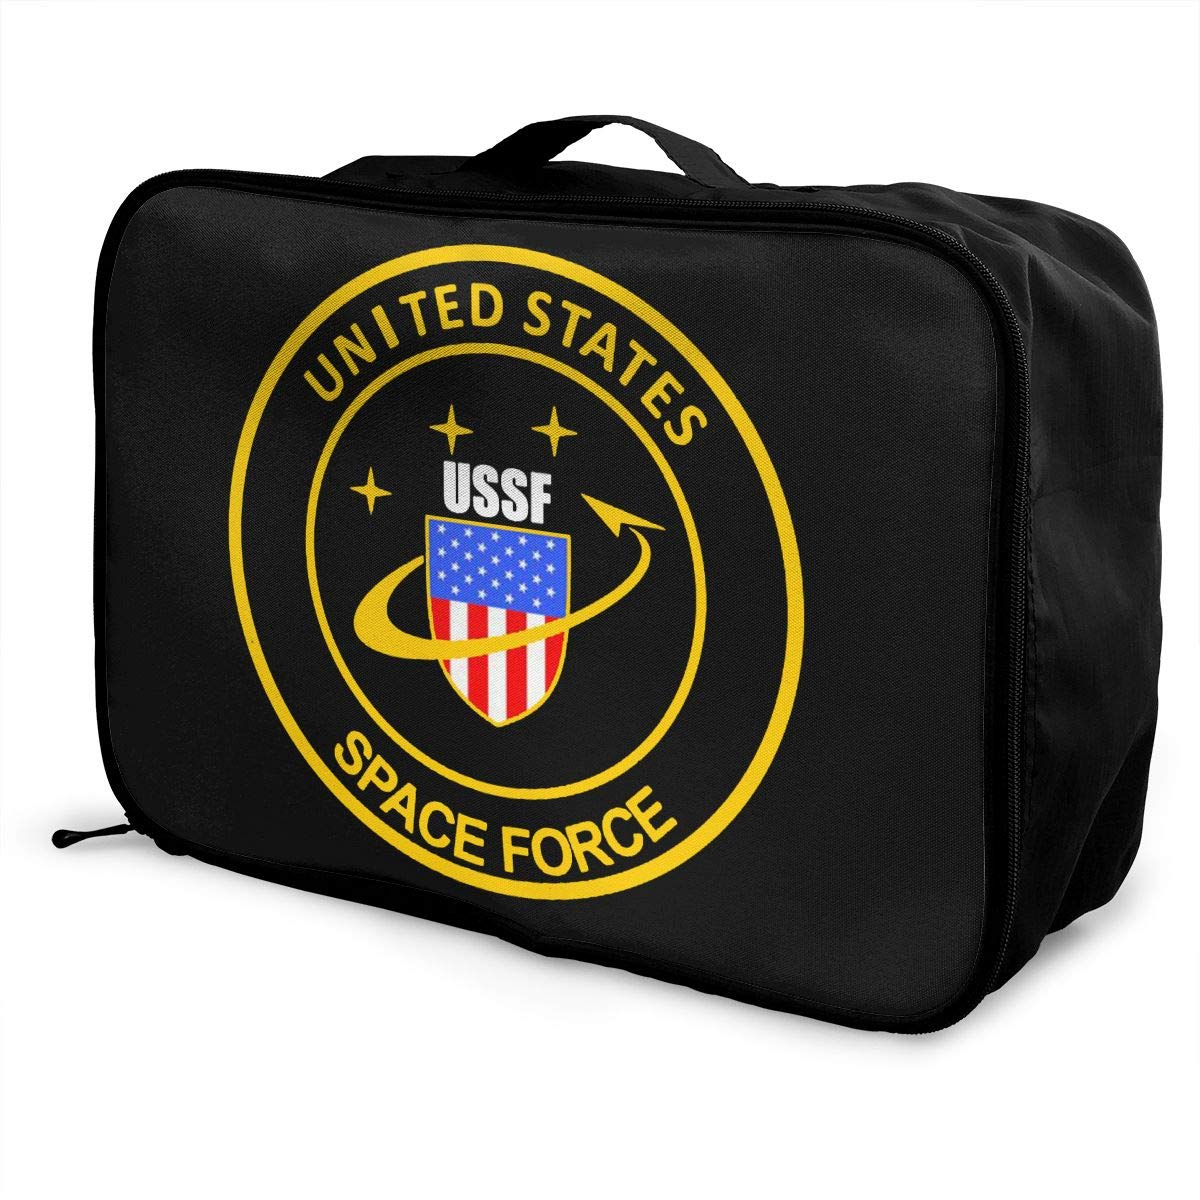 United States Space Force USSF Travel Bag Men Women 3D Print Pattern Gift Portable Waterproof Oxford Cloth Luggage Bag